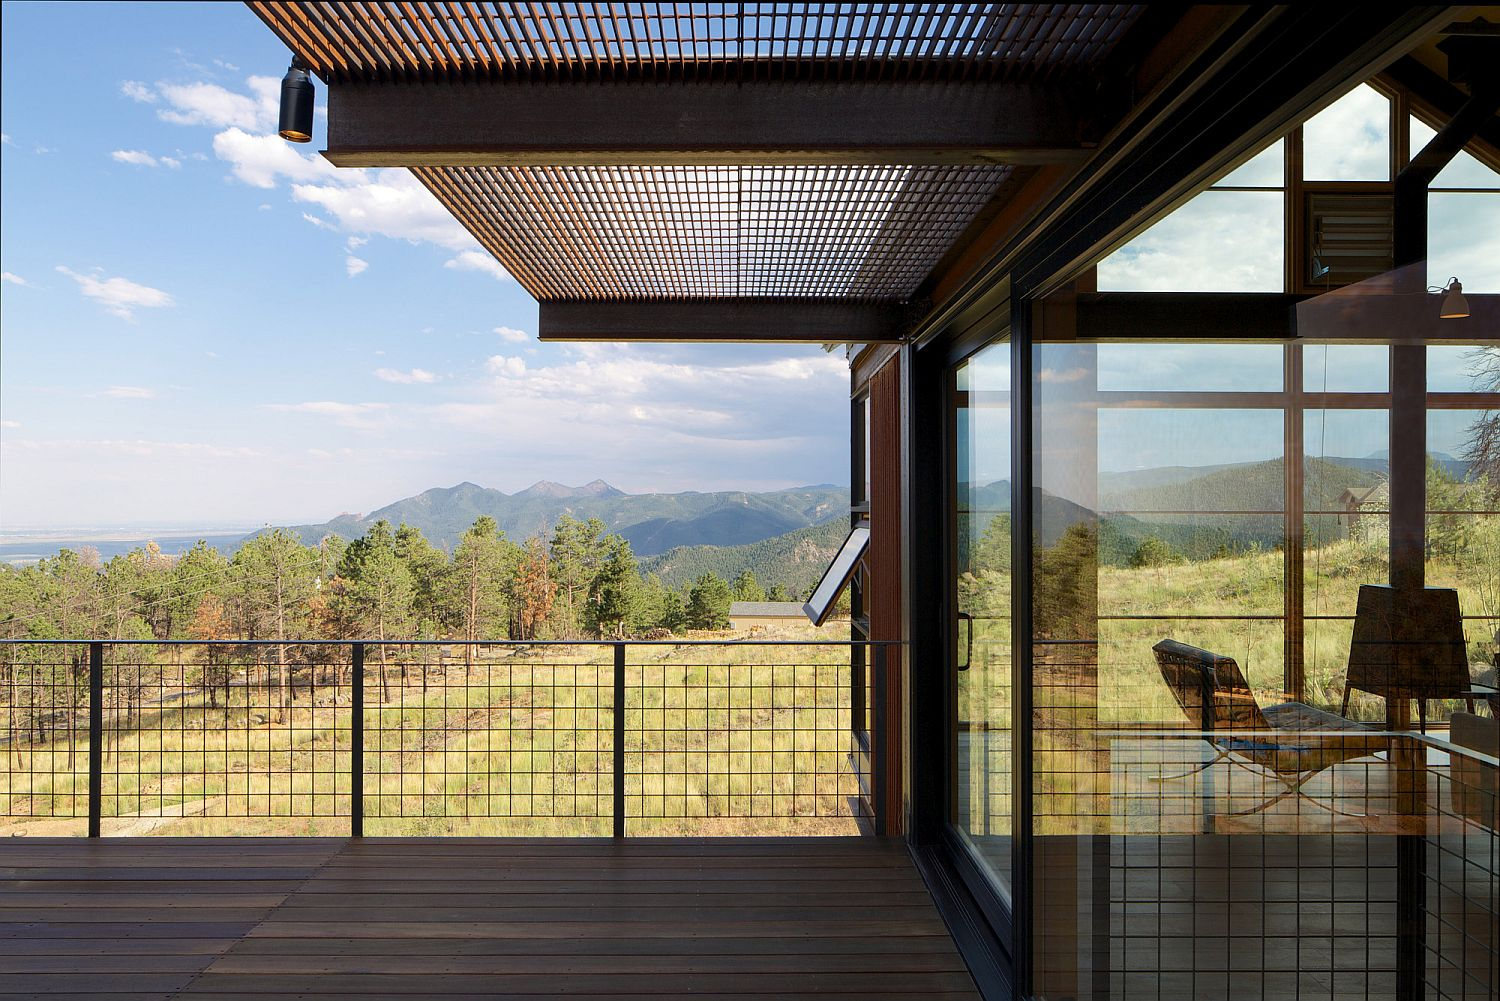 Expansive views of boulder from the deck of the Sunshine Canyon house